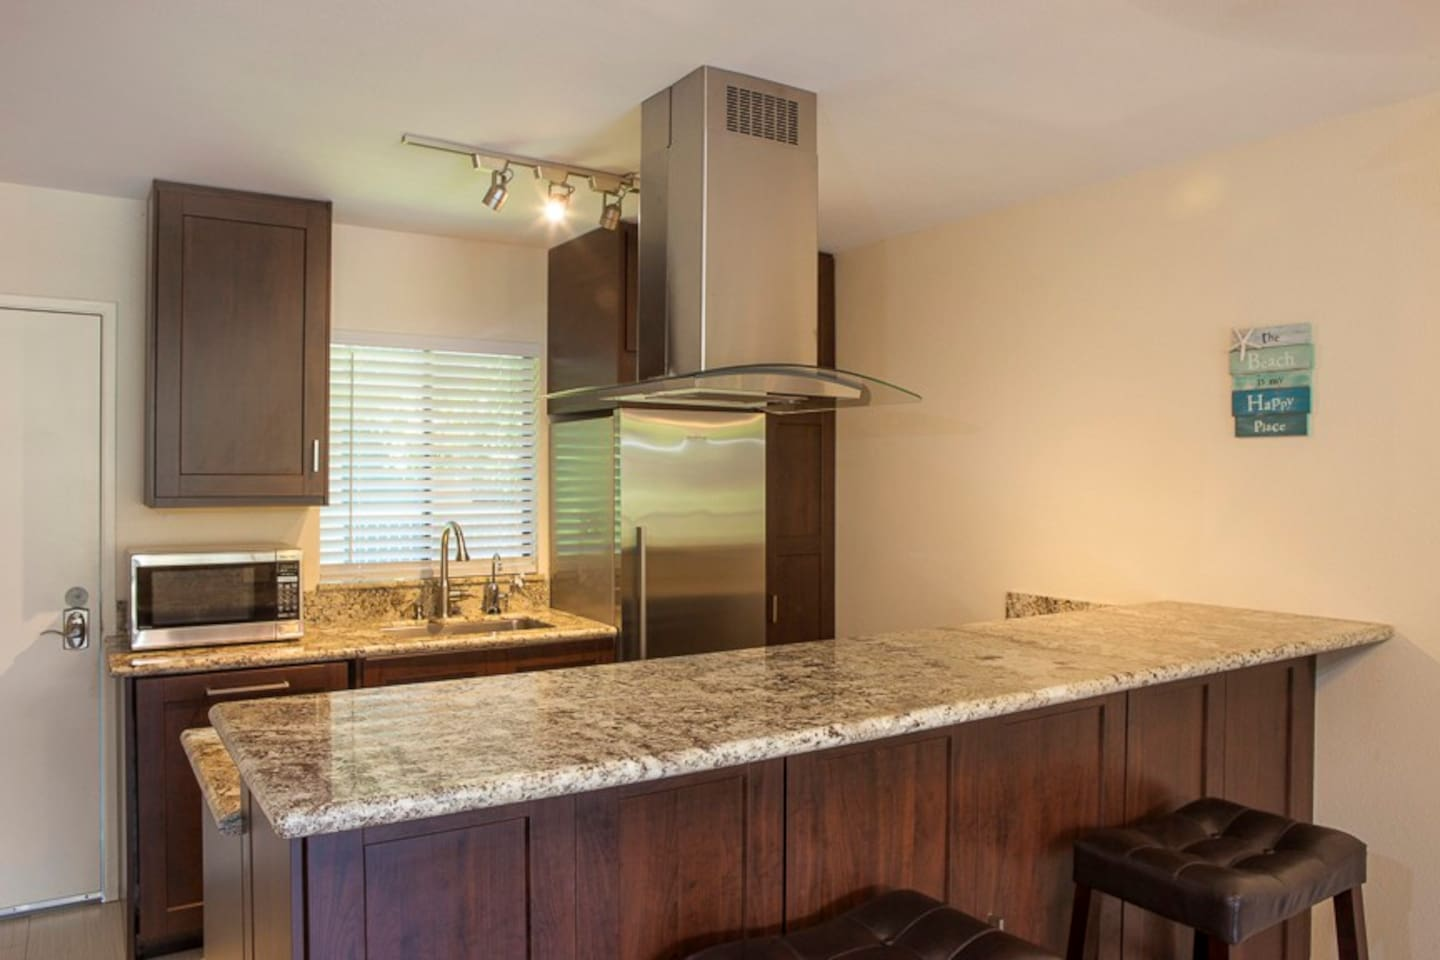 Completely remodeled Kitchen, with a counter and bar stools.